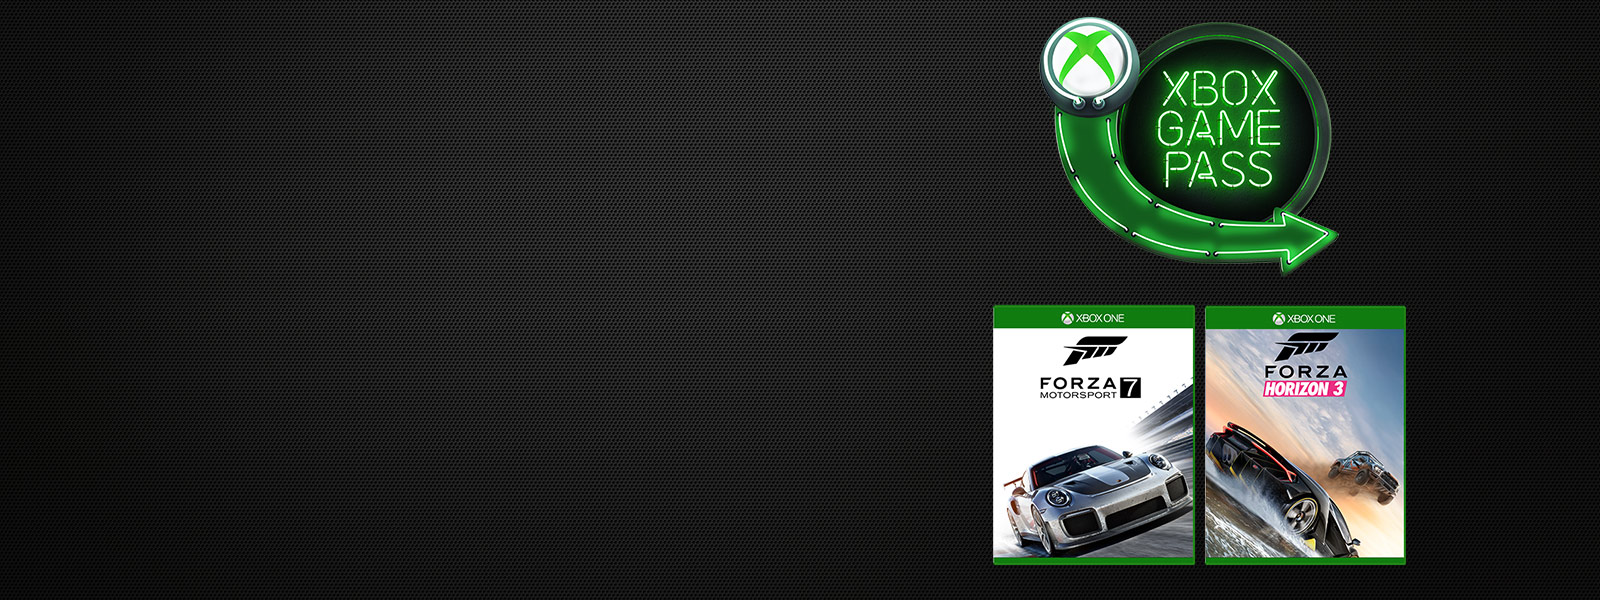 Forza Motorsport 7 and Forza Horizon 3 boxshots underneath Xbox Game Pass logo